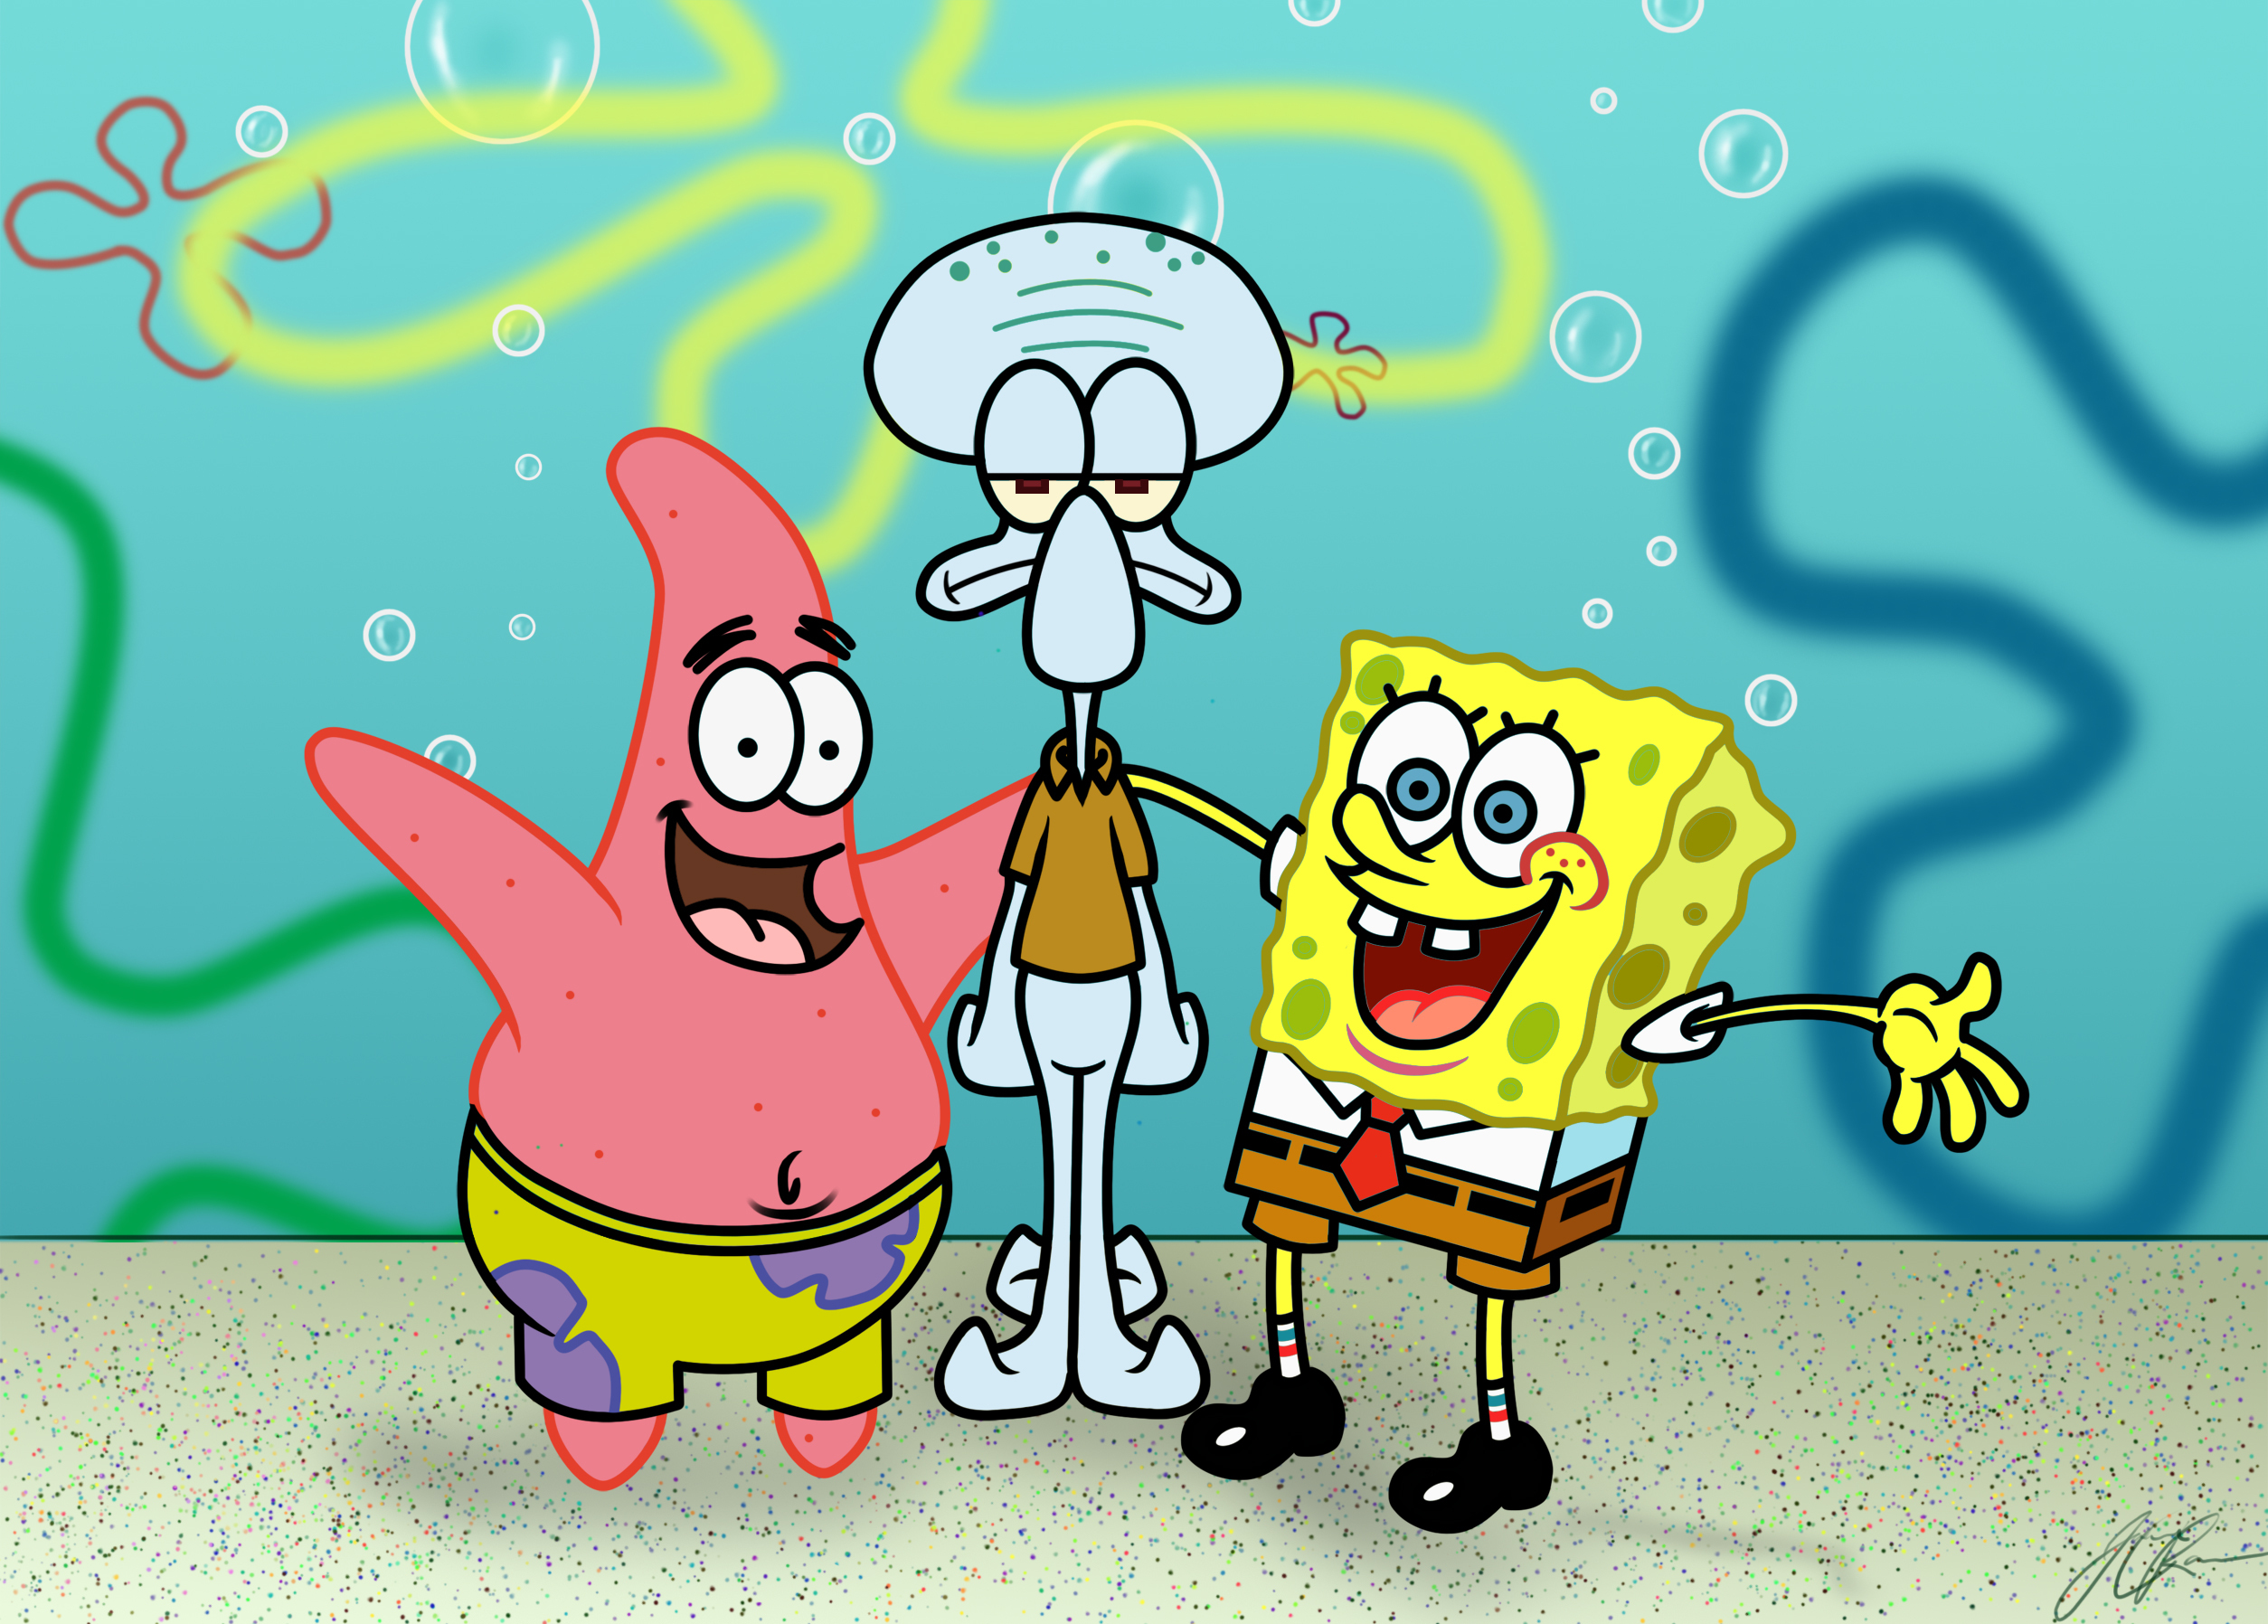 Spongebob, Patrick and Squidward - Spongebob Squarepants ...